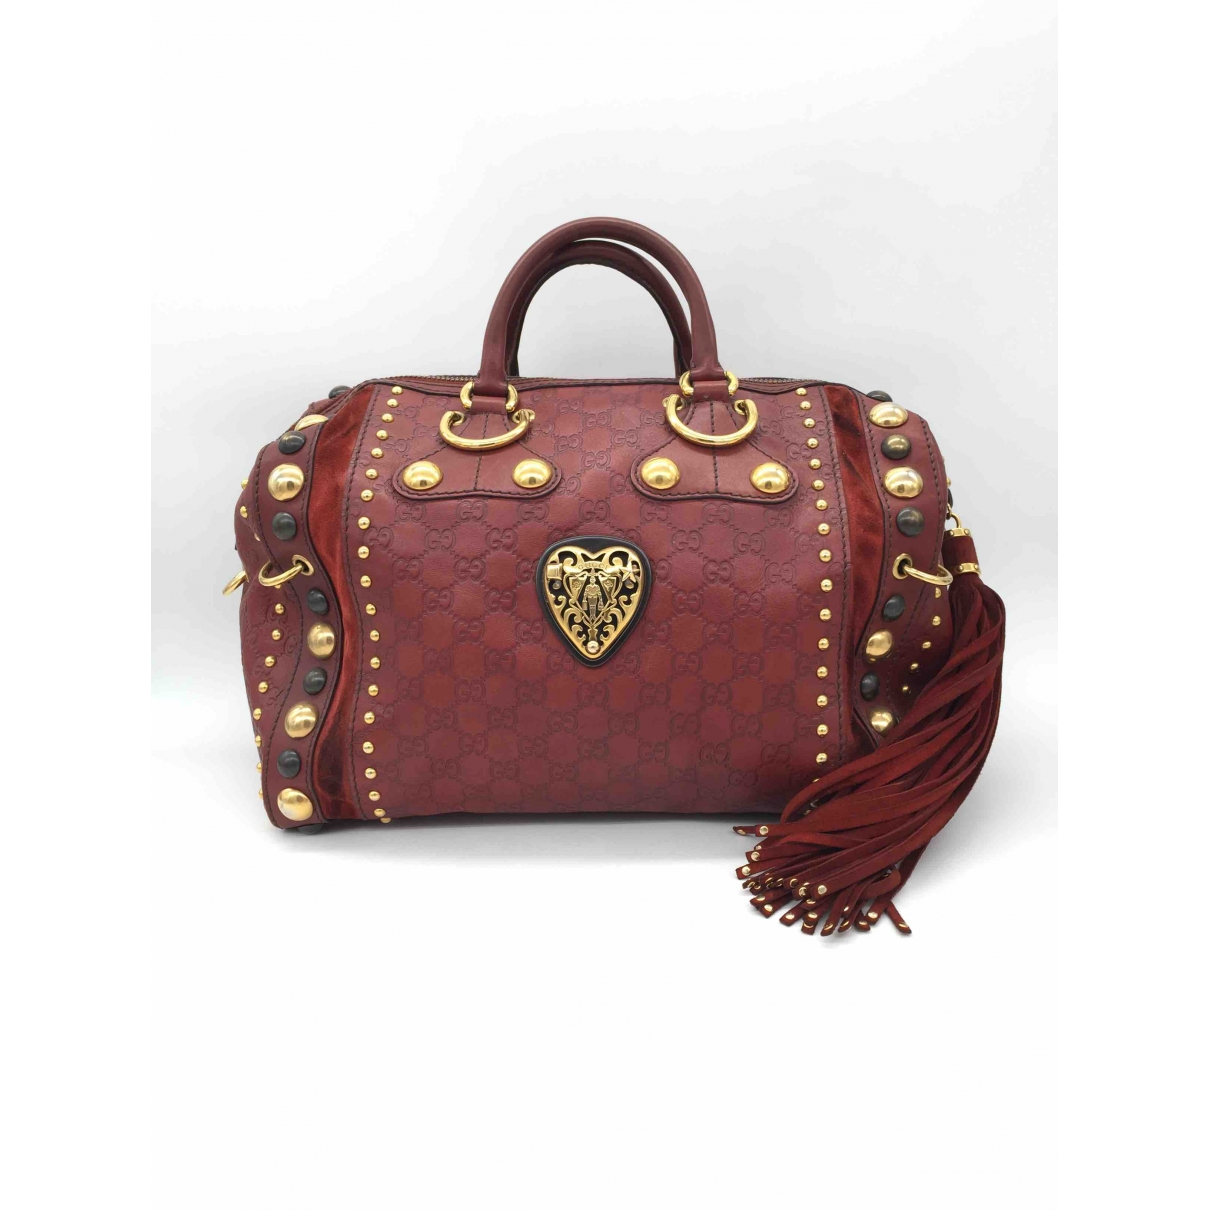 Gucci \N Red Leather handbag for Women \N